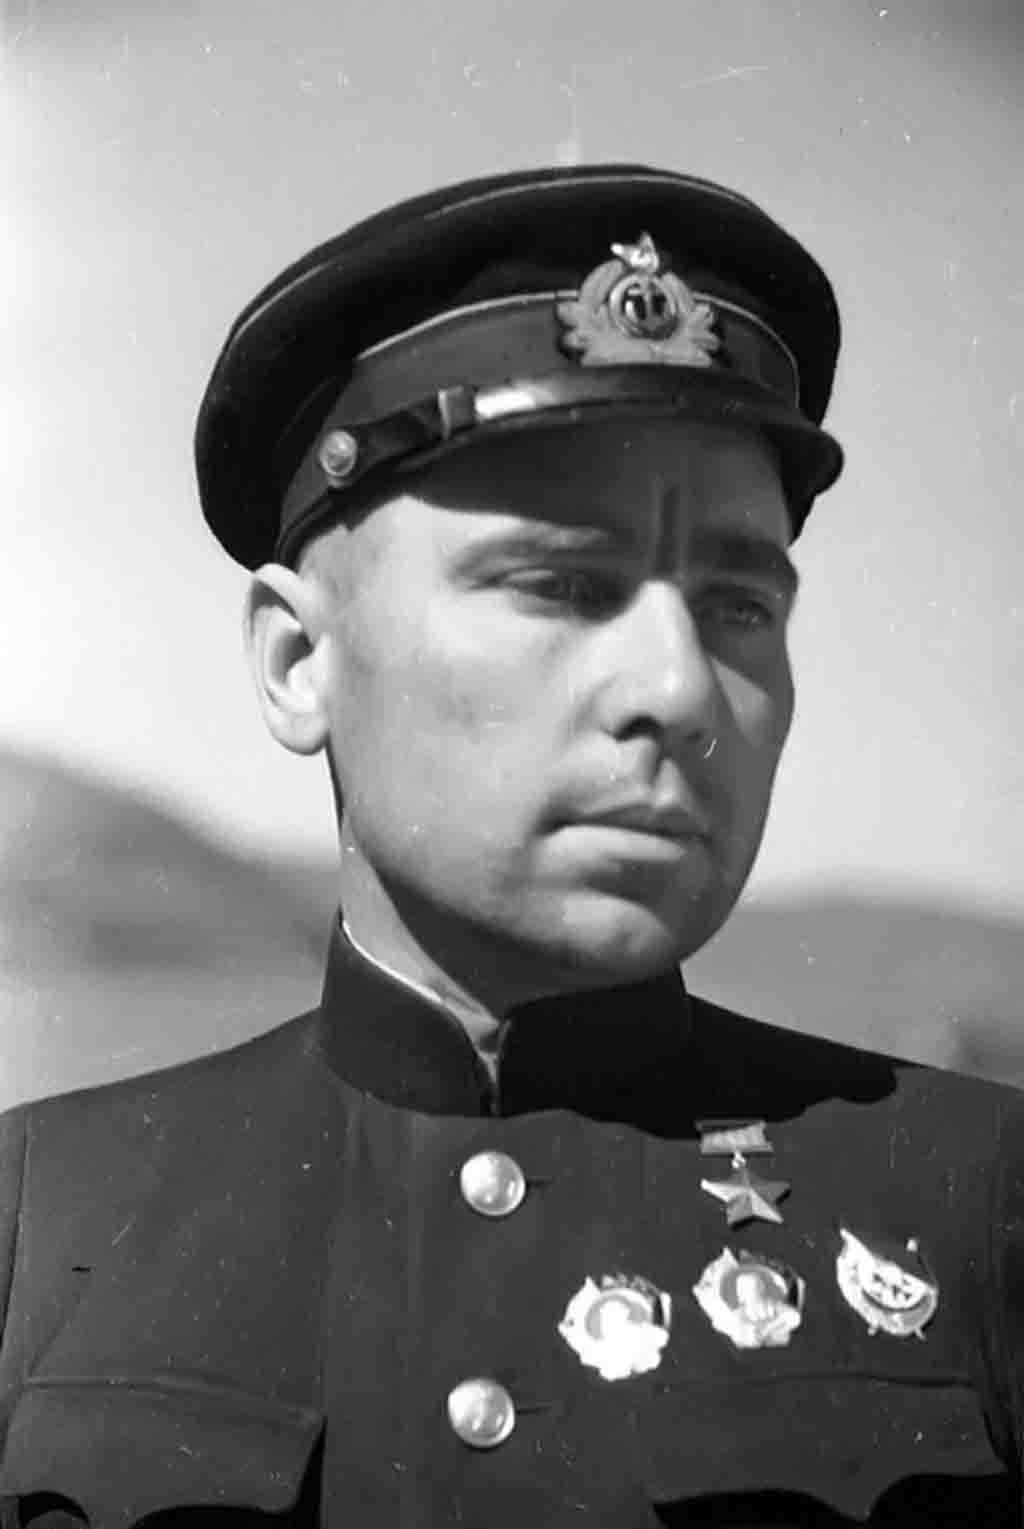 World War II - Nikolai Lunin